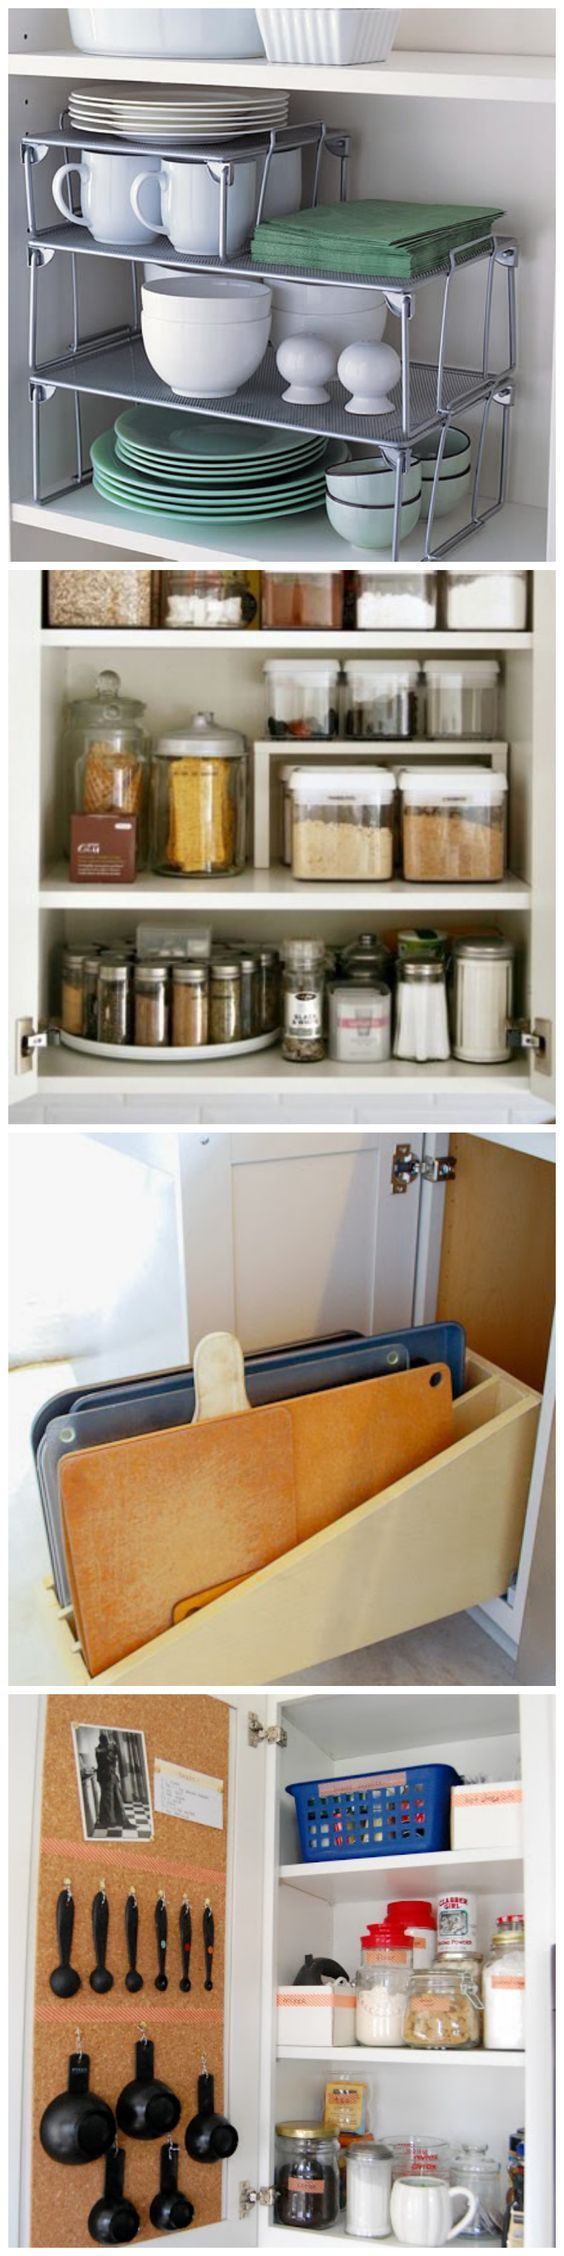 18 Organizing Ideas That Make the Most Out of Your Cabinets | Kitchen  organization hacks, Organizations and Kitchens